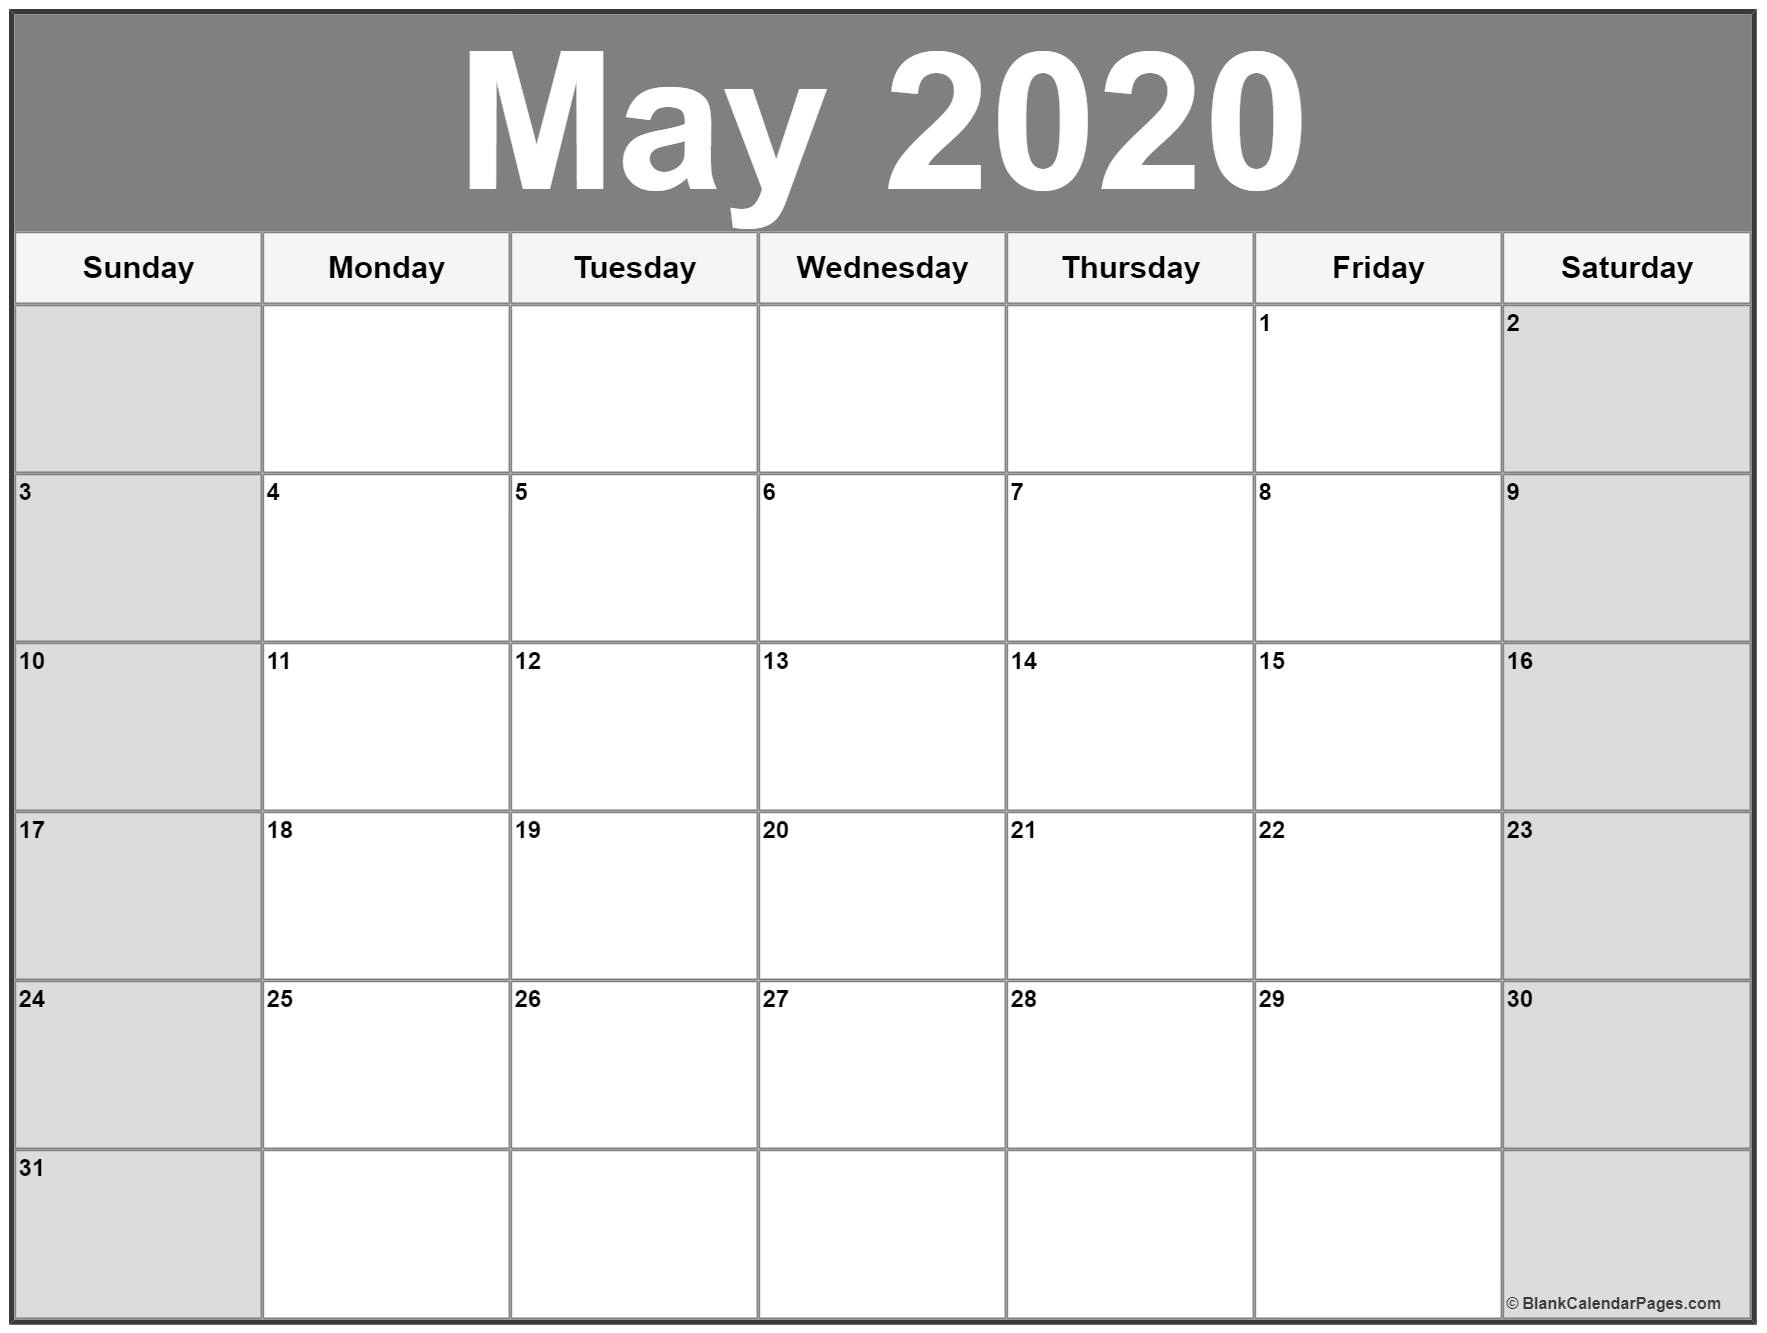 May 2020 Calendar Printable Landscape Monday Thru Friday